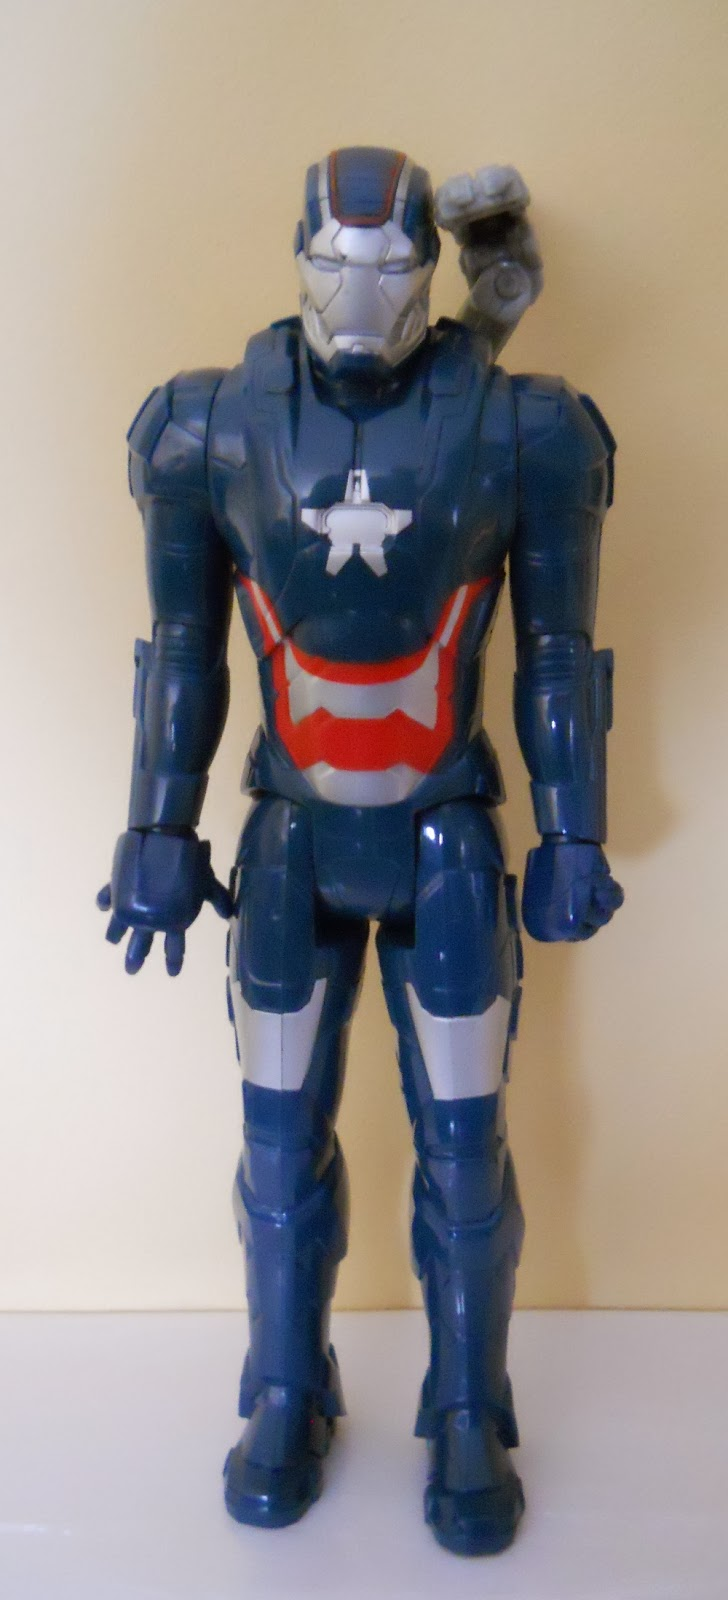 maqueta de ironman patriot